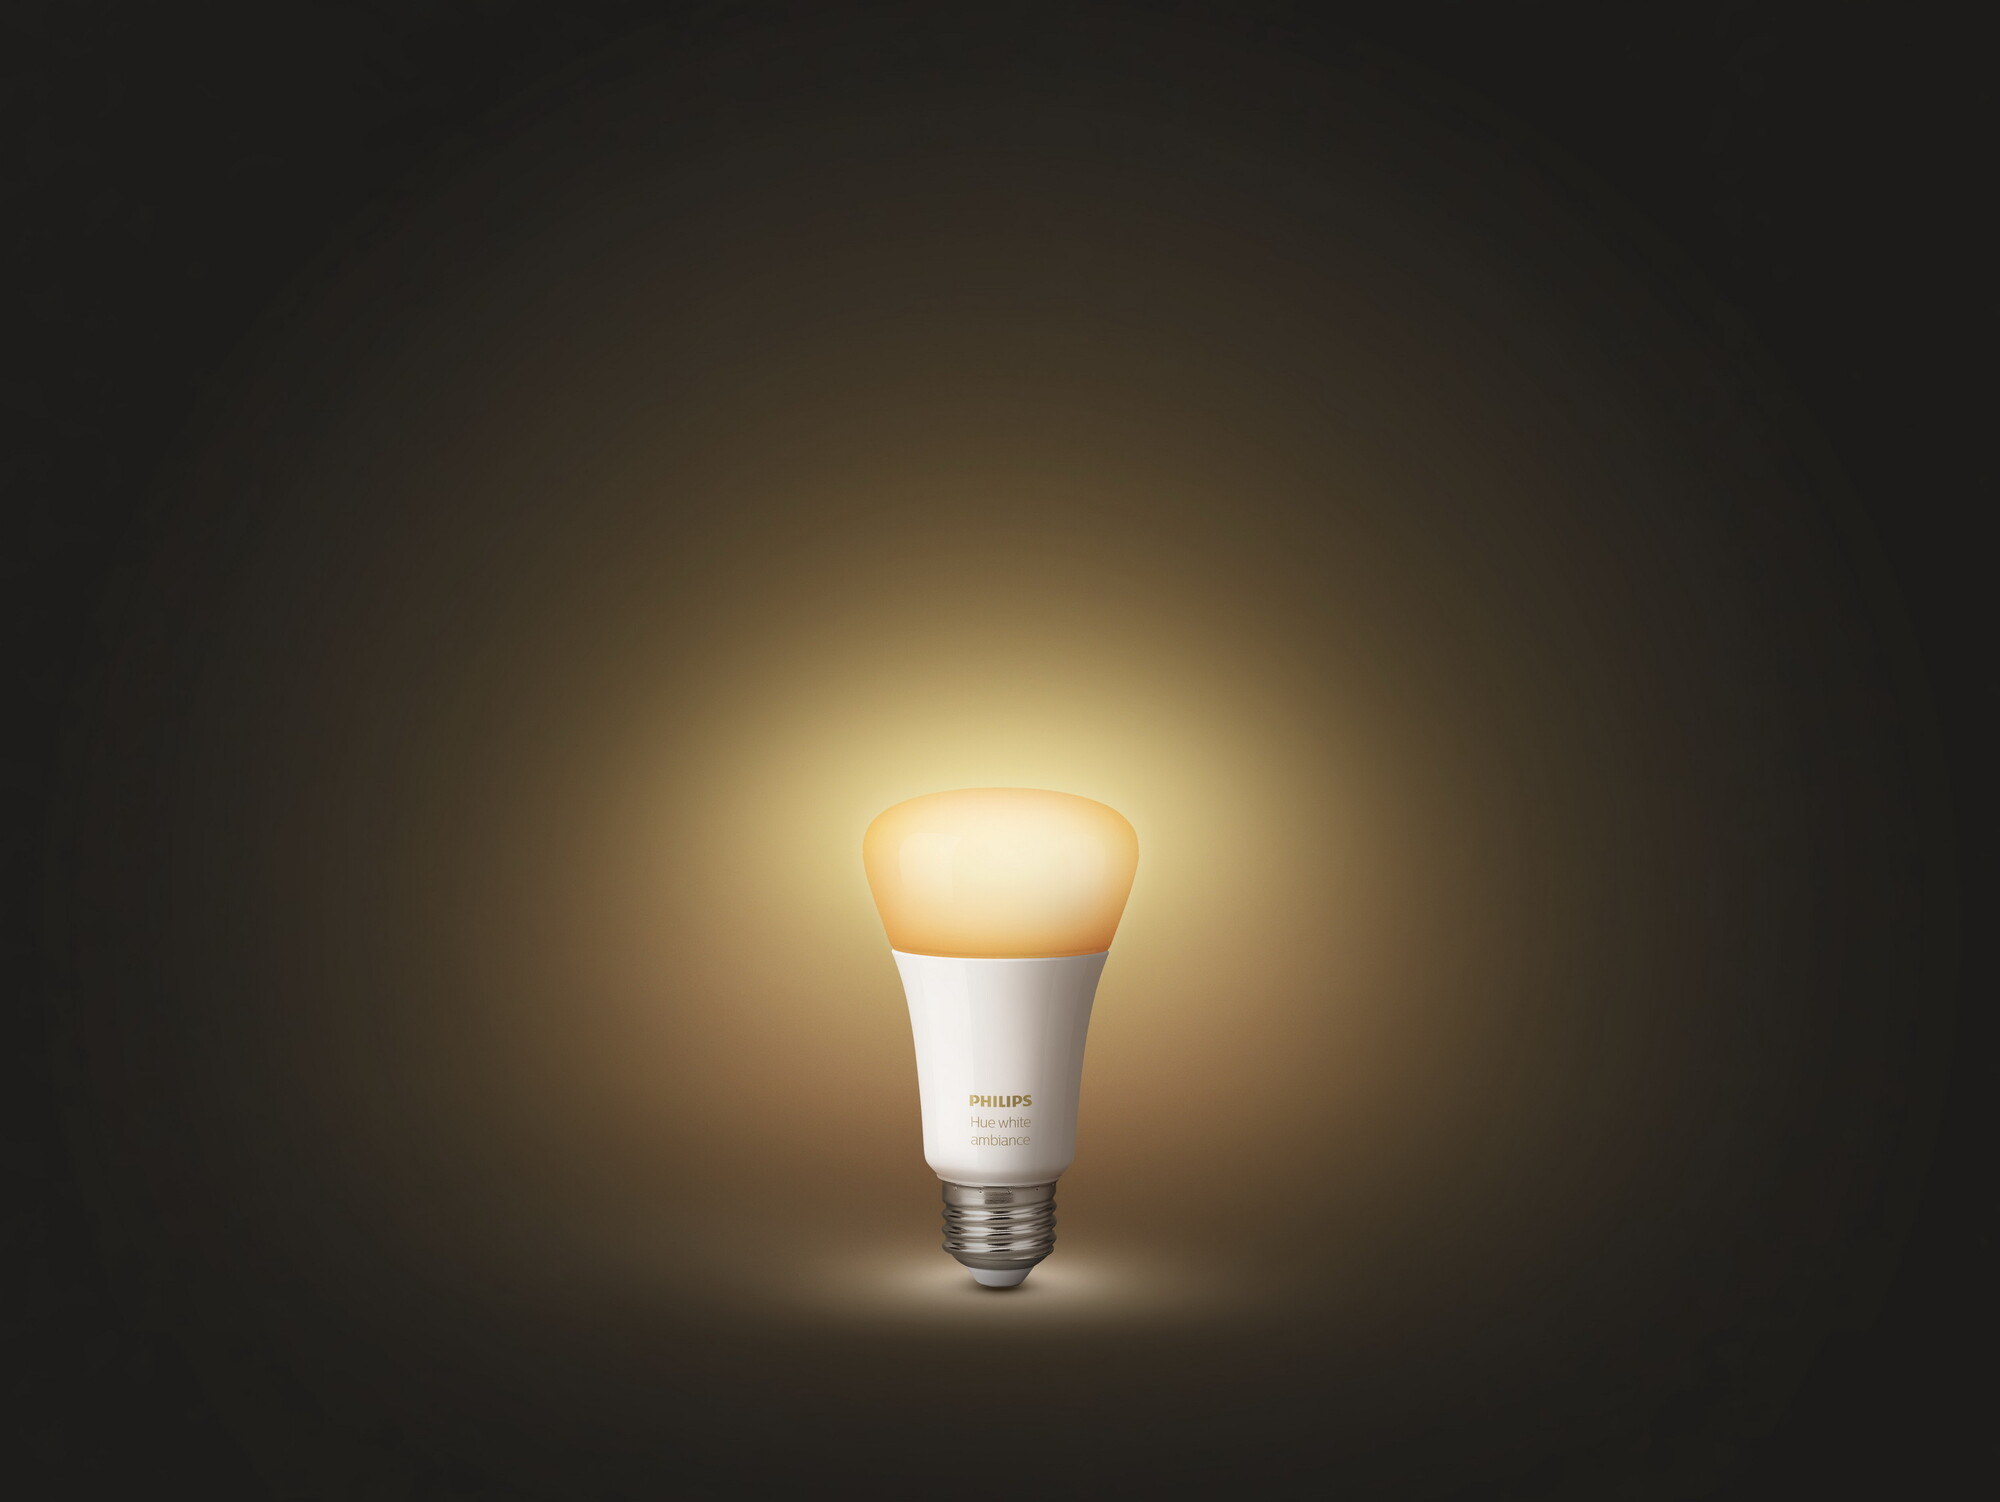 Philips HUE White ambiance E27 8,5W 806lm 2200K-6500K Lamp Frosted